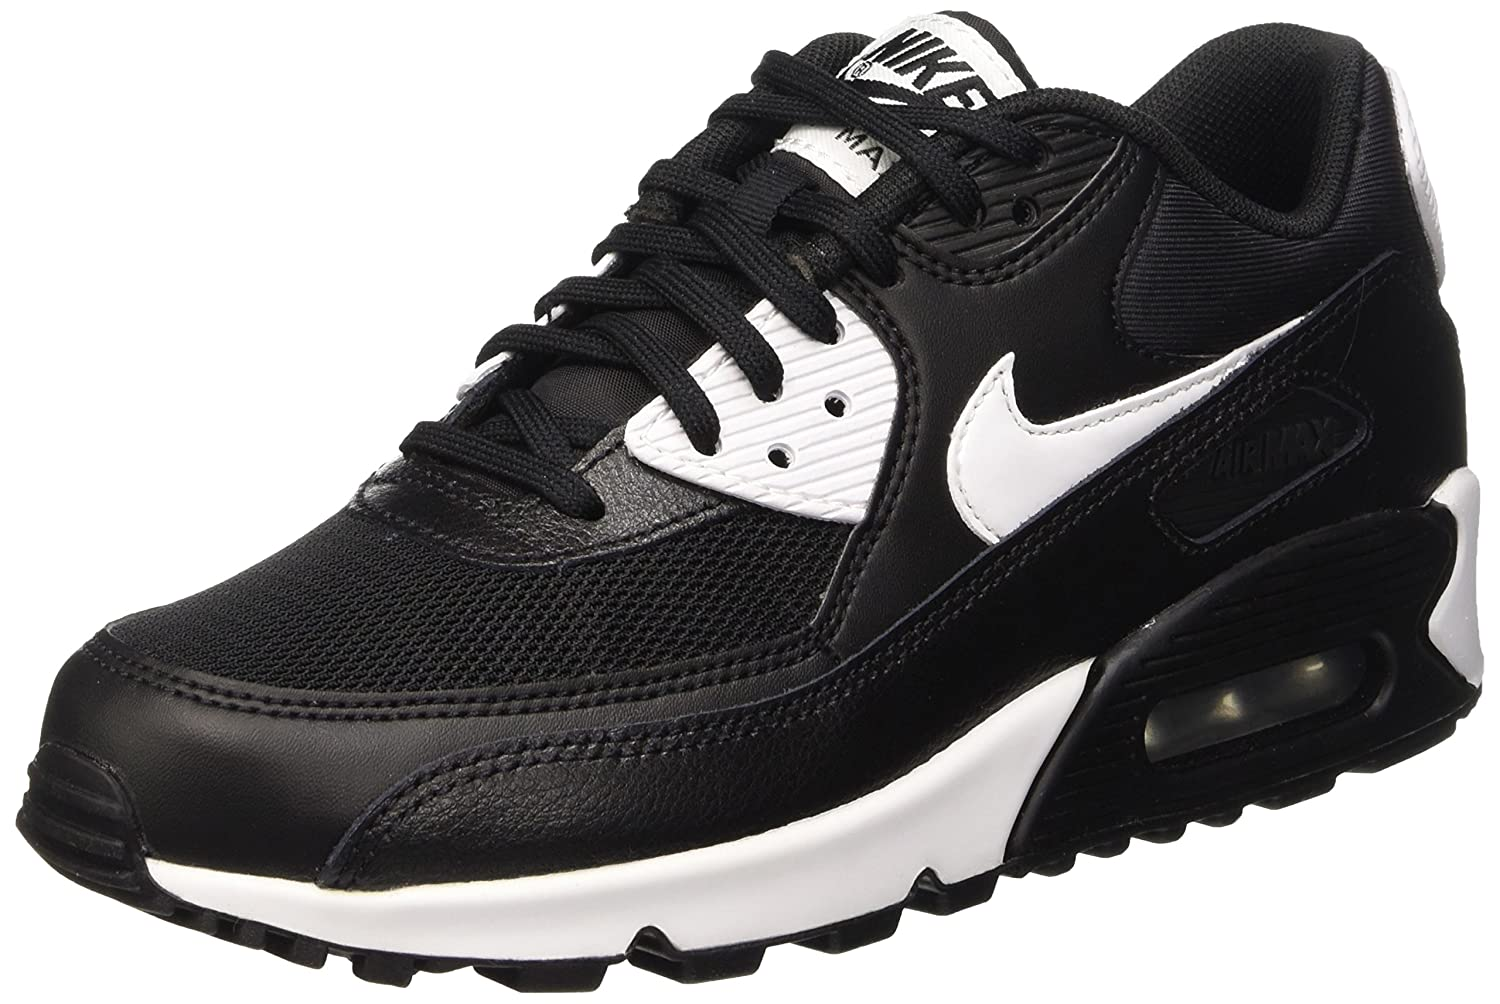 innovative design e95a0 18417 Amazon.com   Nike Womens Air Max 90 Essential Black White Metallic Silver  Running Shoe, US 8   Running